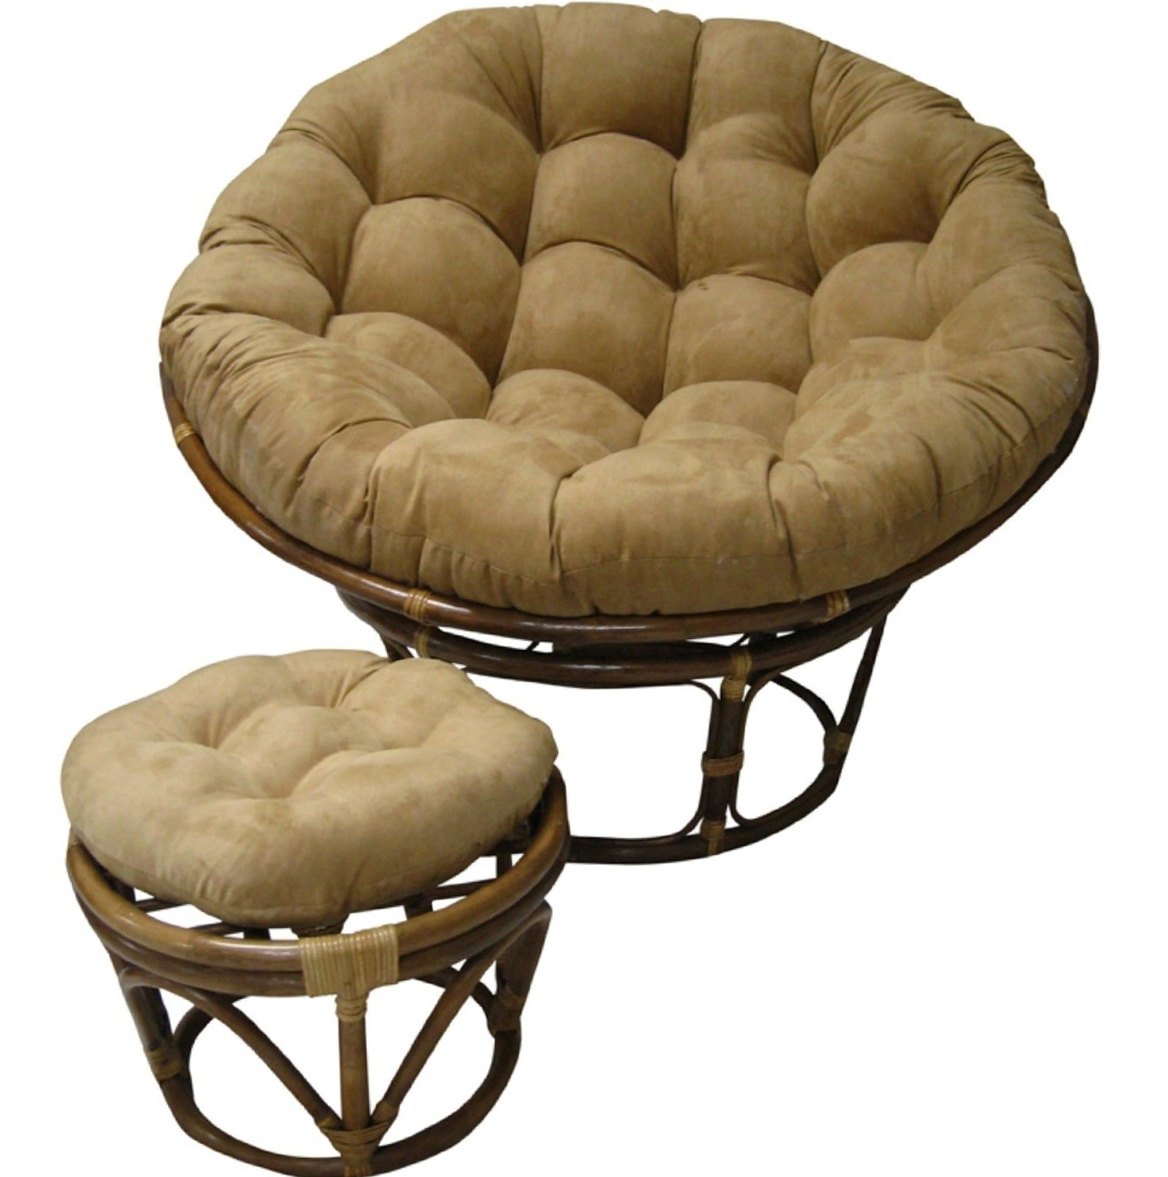 Cheap Papasan Chair Outdoor Papasan Cushion Sale Home Design Ideas